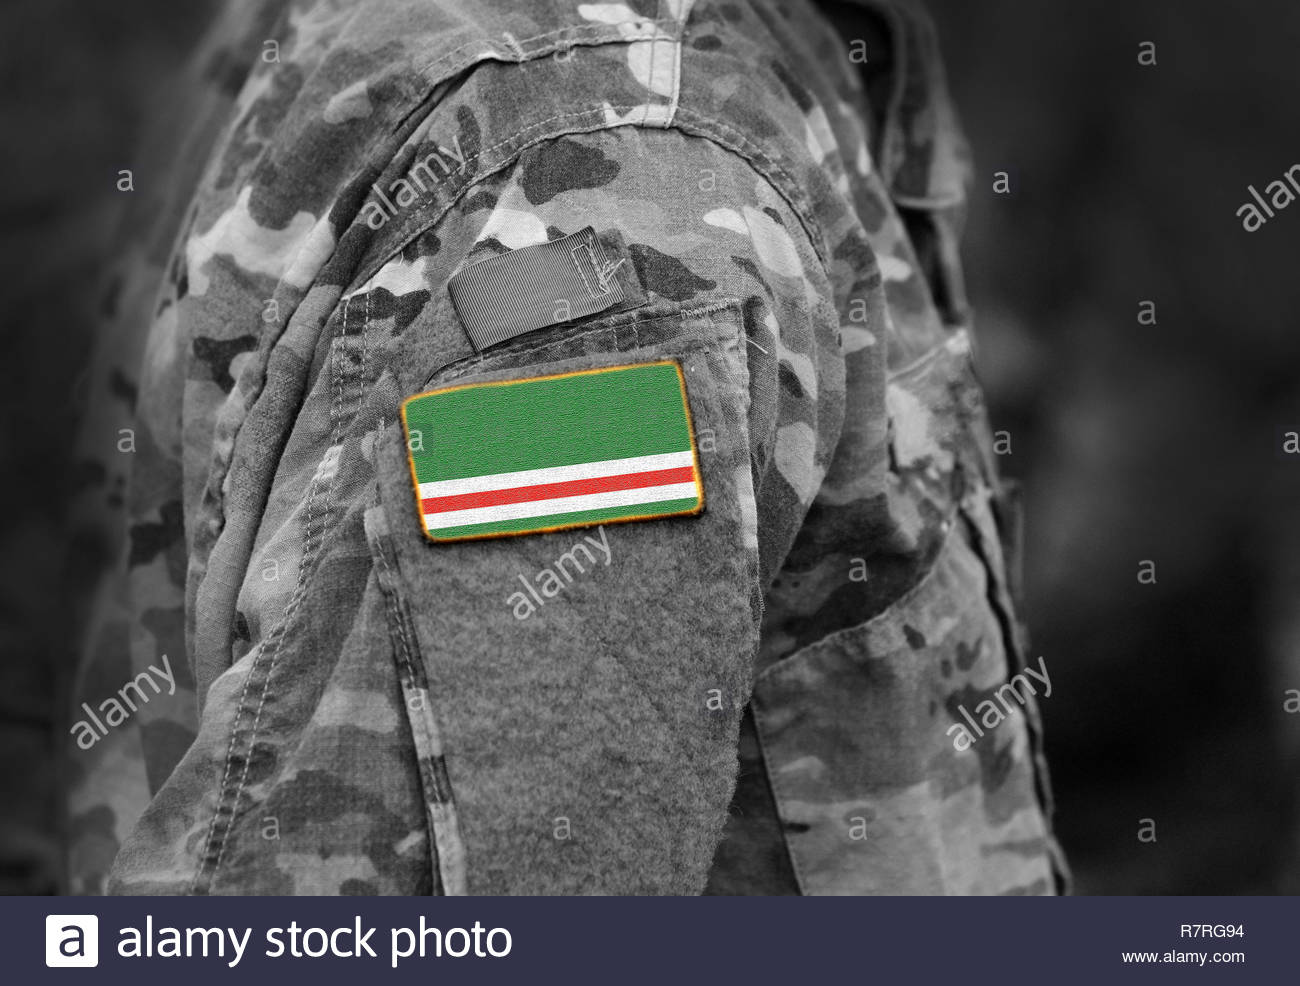 Flag of Chechen Republic of Ichkeria on military uniforms. Flag of Chechen Republic of Ichkeria on soldiers arm.  (collage). - Stock Image